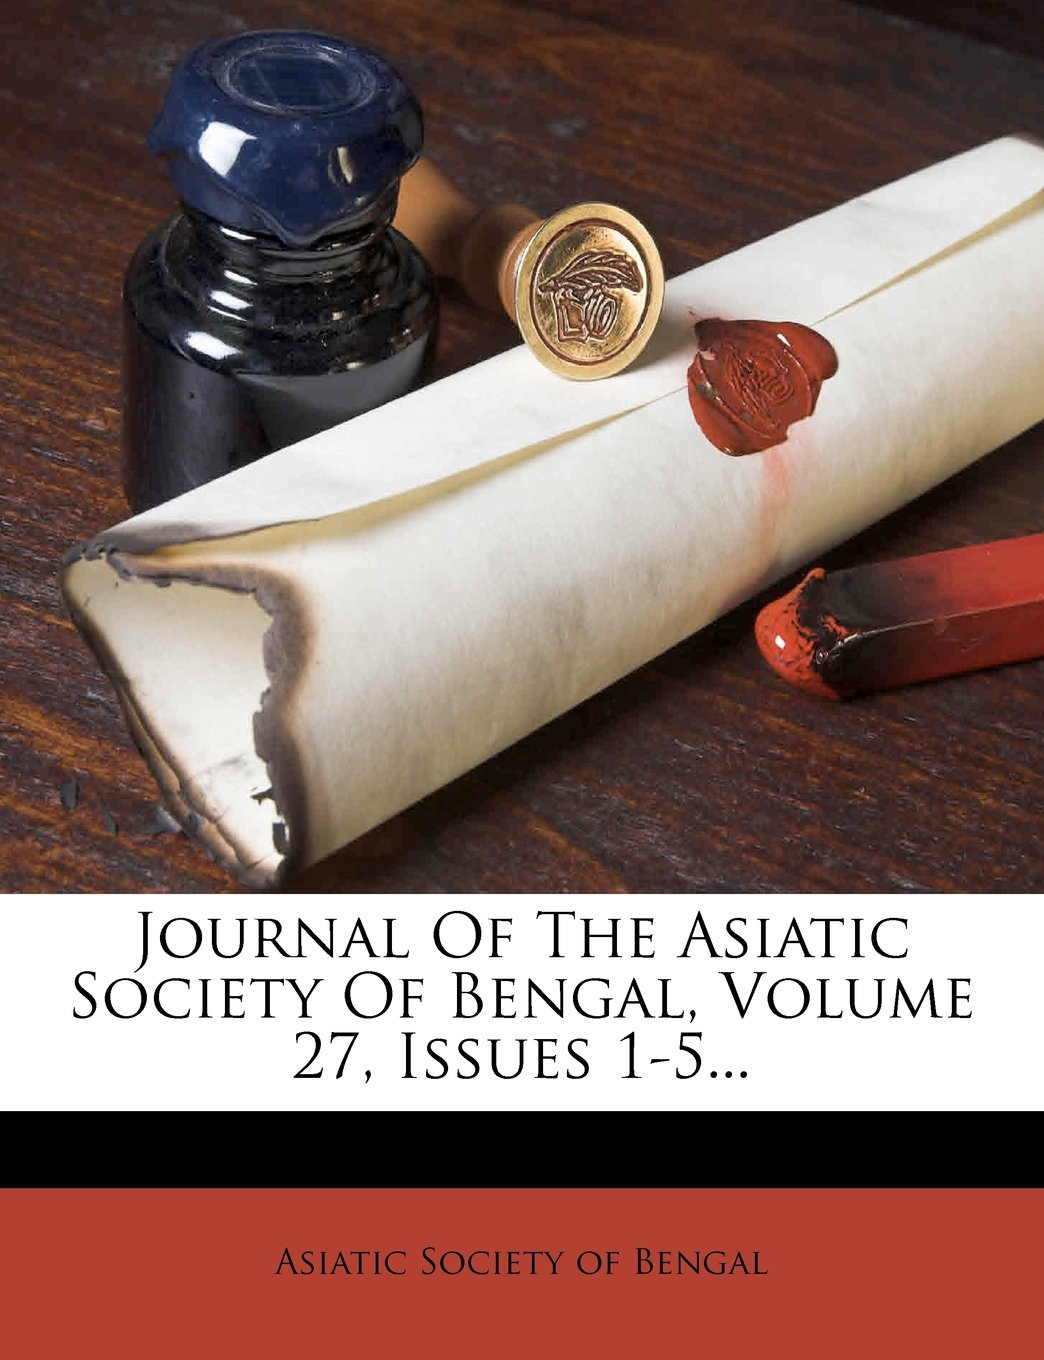 Journal Of The Asiatic Society Of Bengal, Volume 27, Issues 1-5... PDF